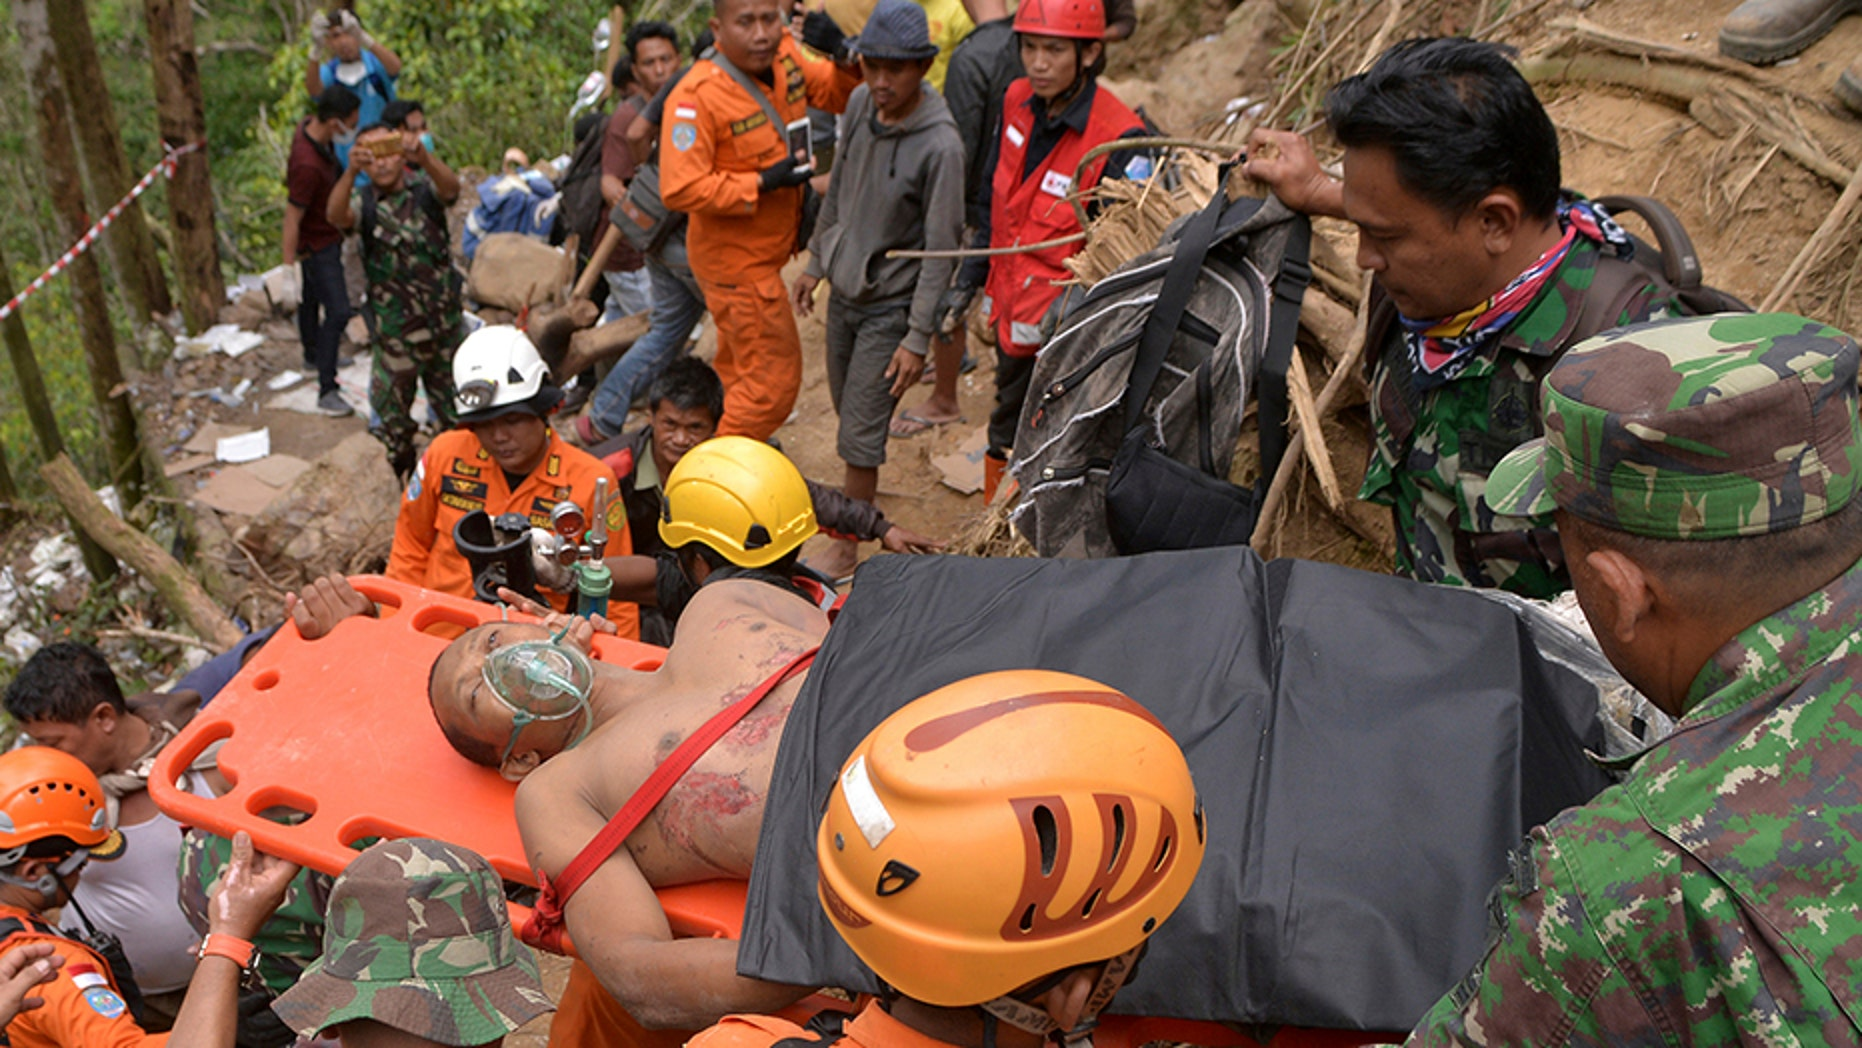 Rescuers carry a survivor of a collapsed mine on a stretcher in Bolaang Mongondow, North Sulawesi, Indonesia, on Thursday.